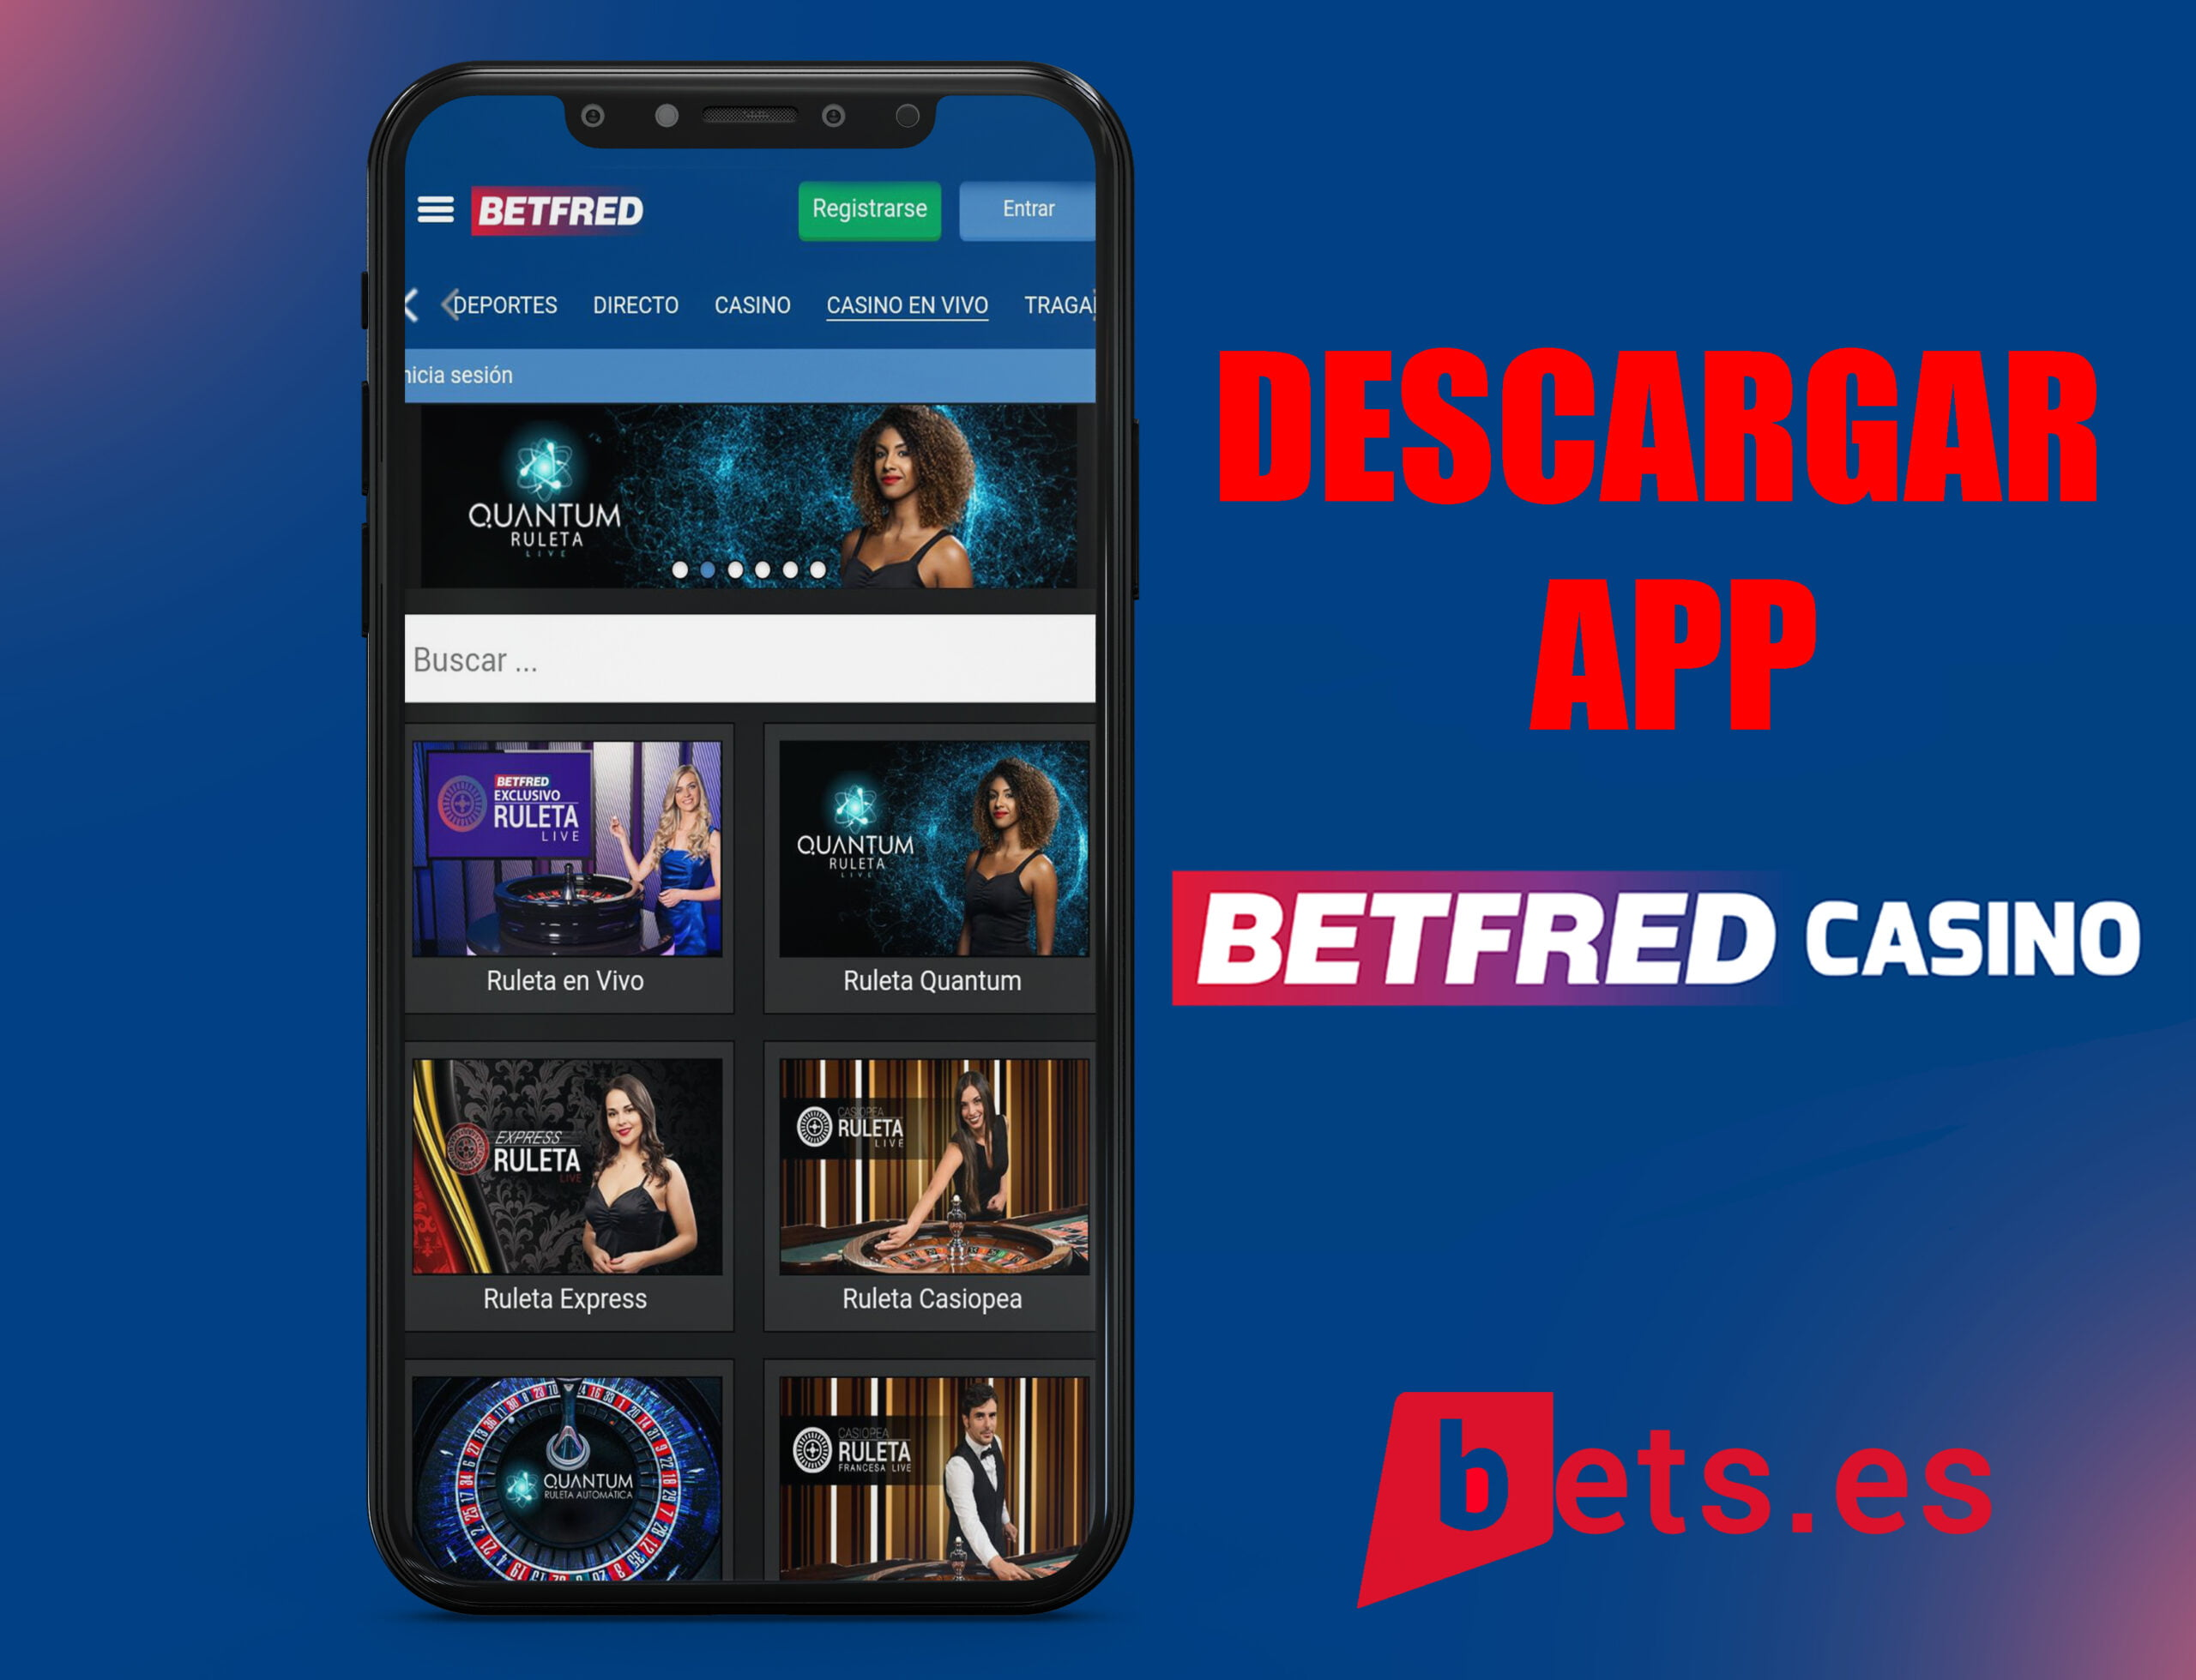 descargar app betfred casino